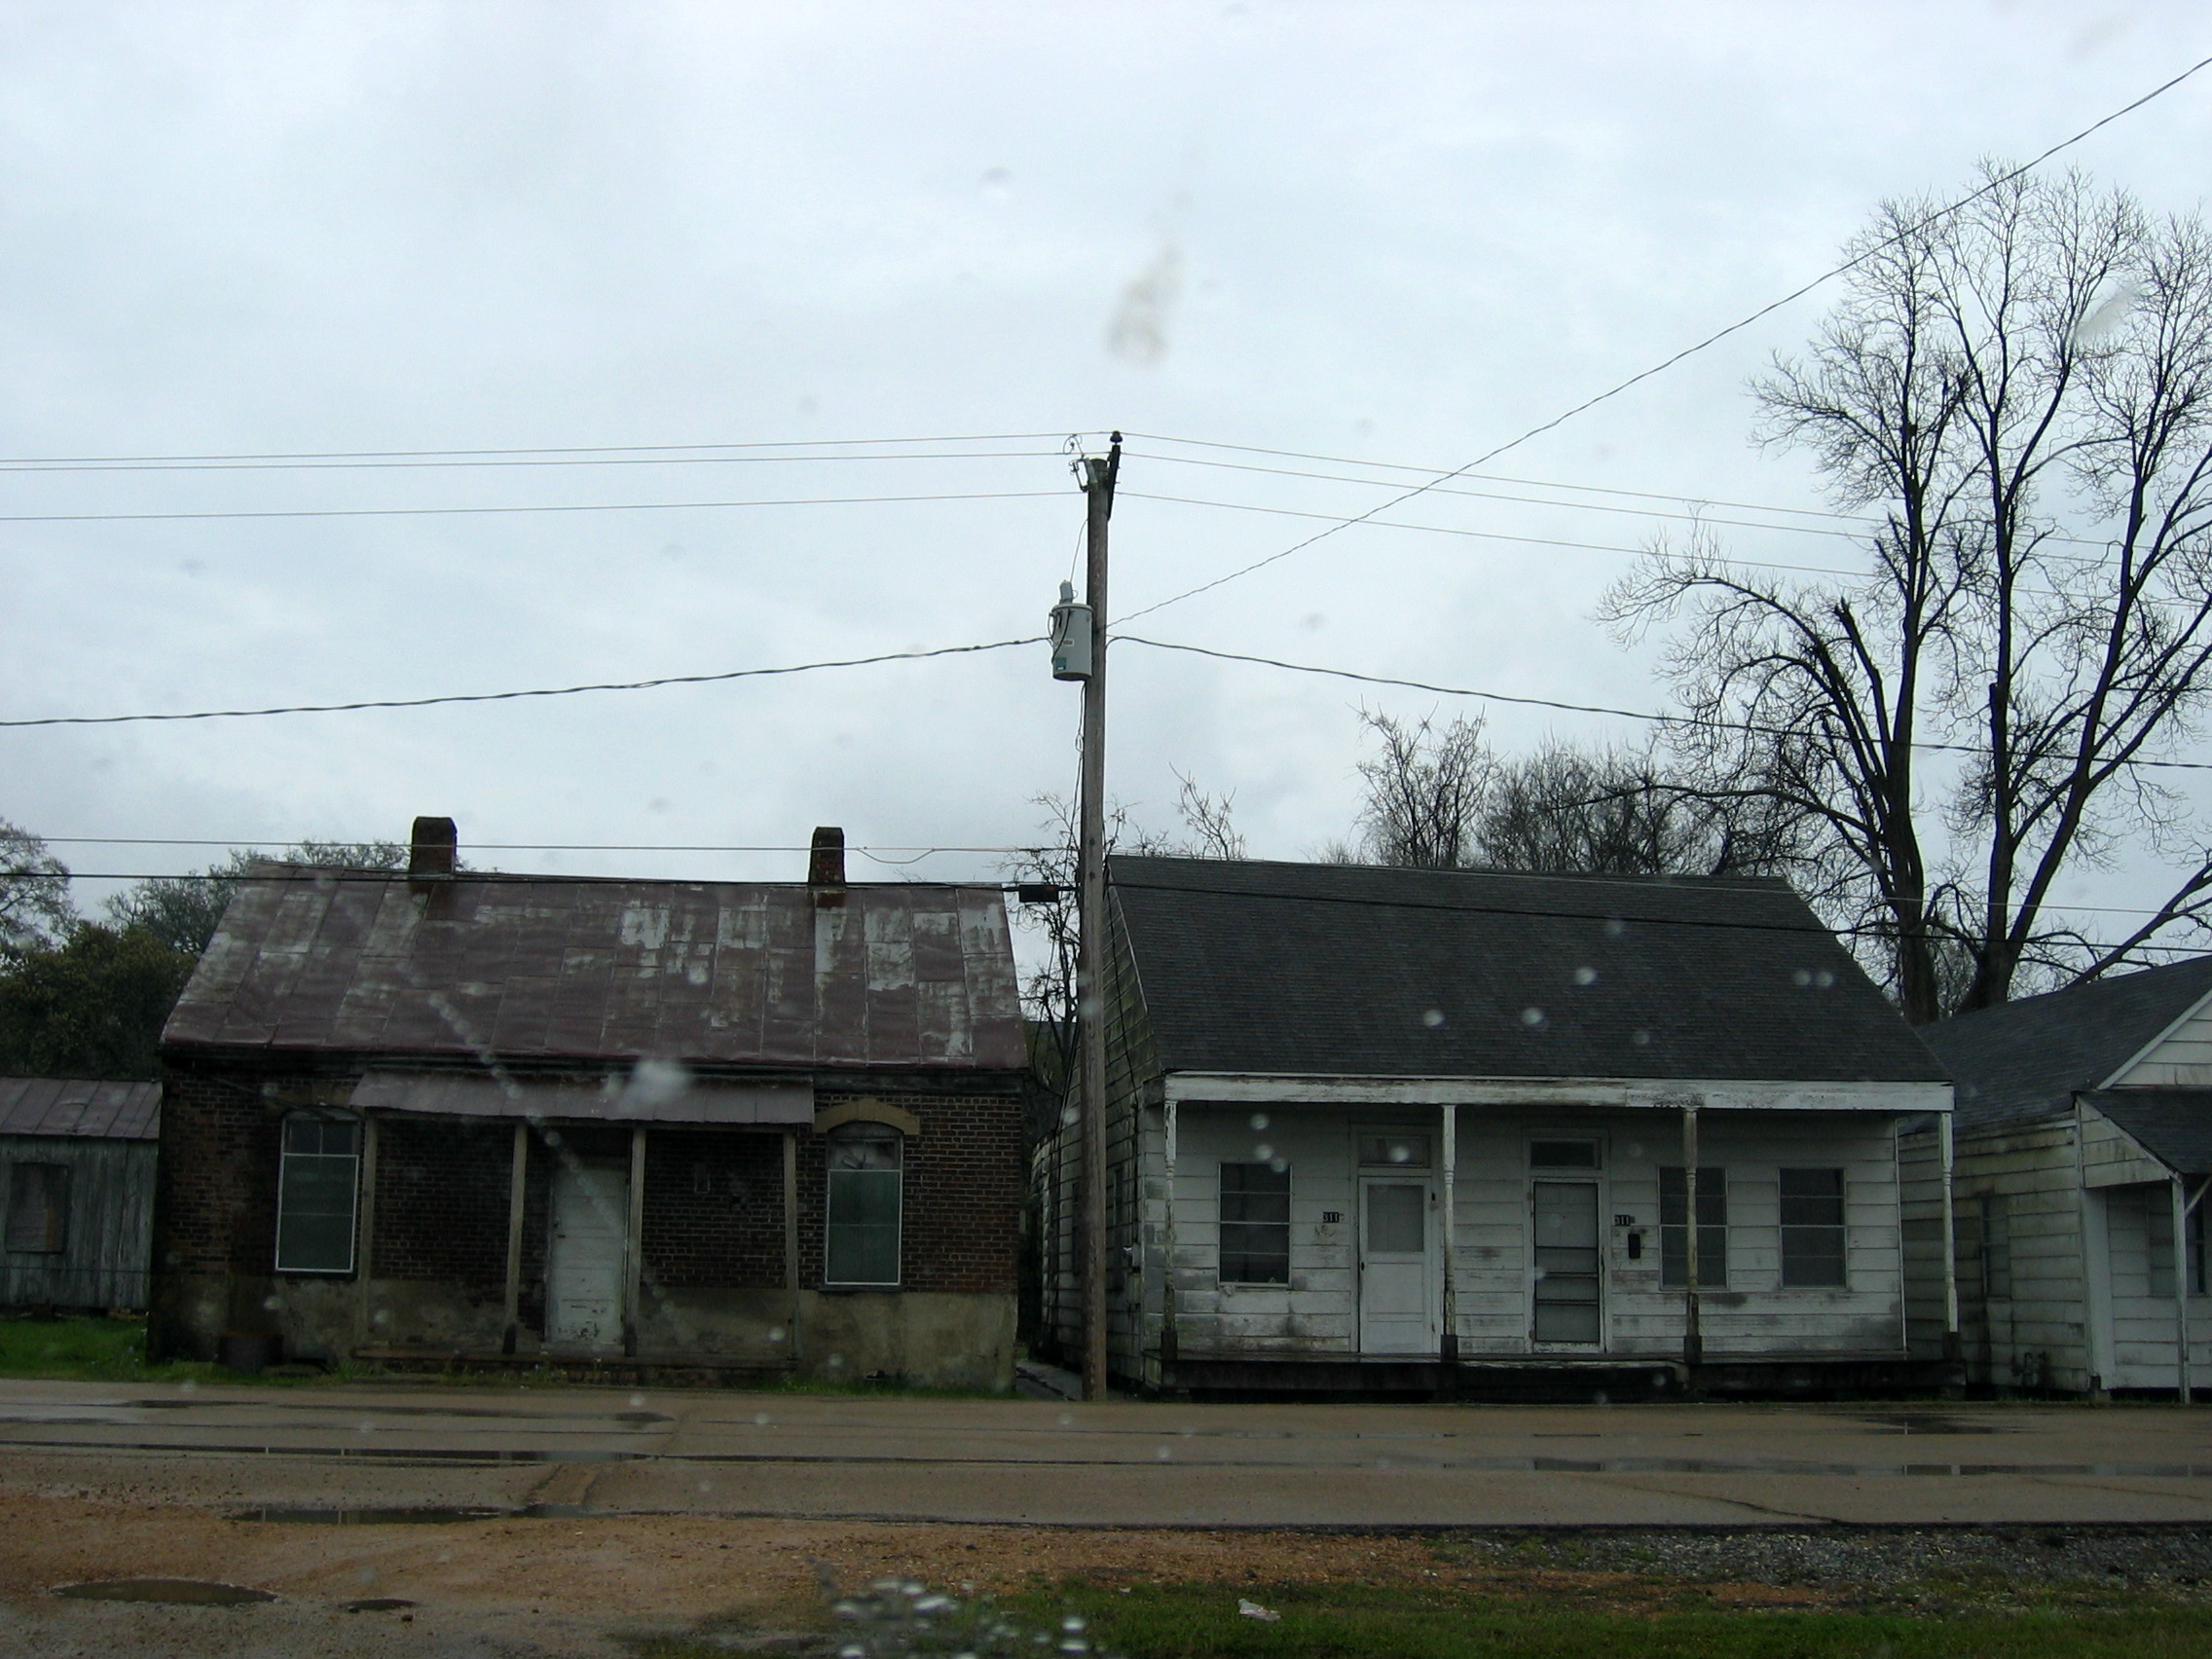 Rundown houses in nanchez explore activefree 39 s photos on for 0 down homes